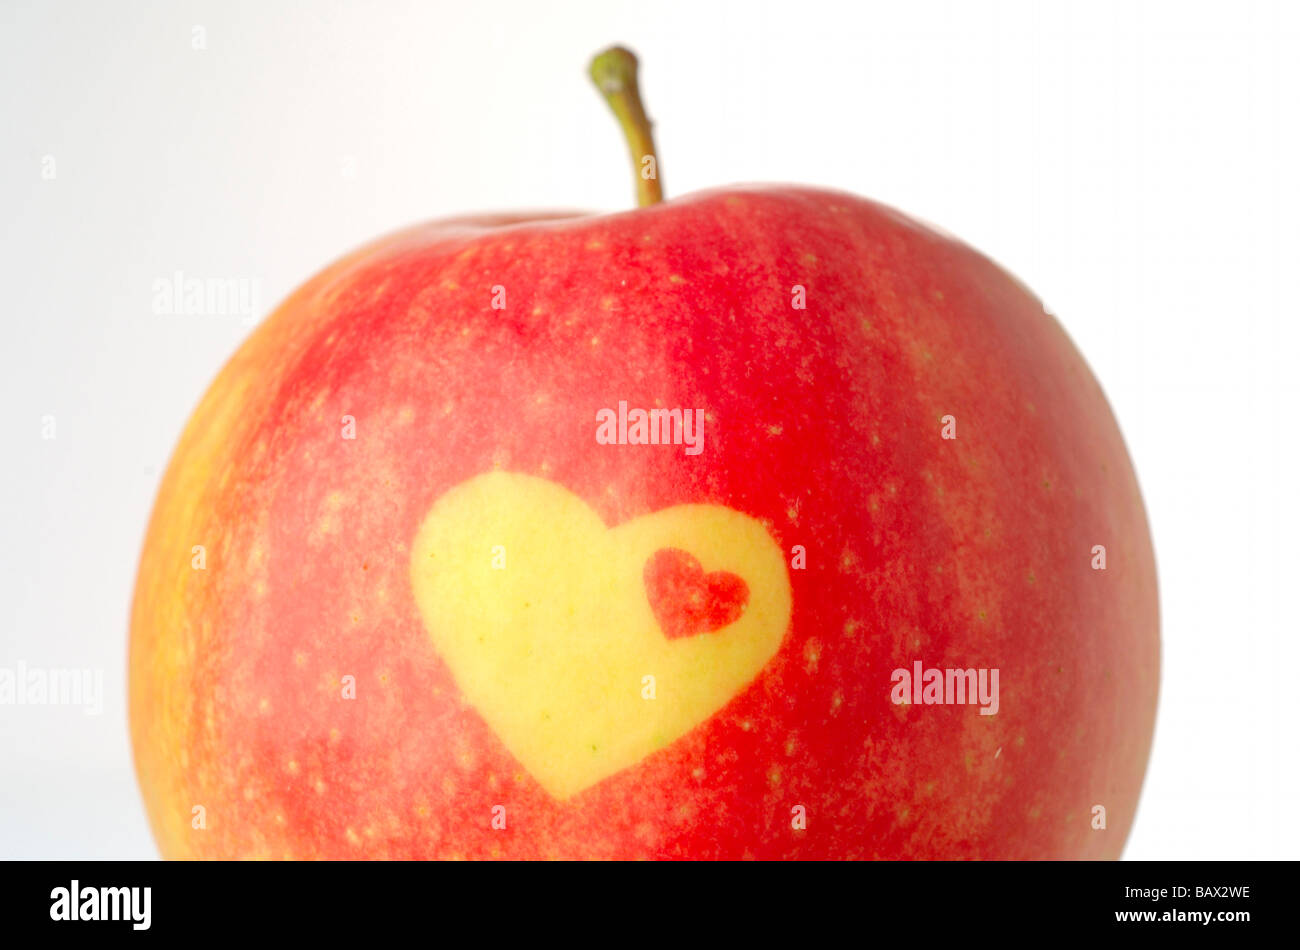 Apple decorativa con forma de calorFoto de stock